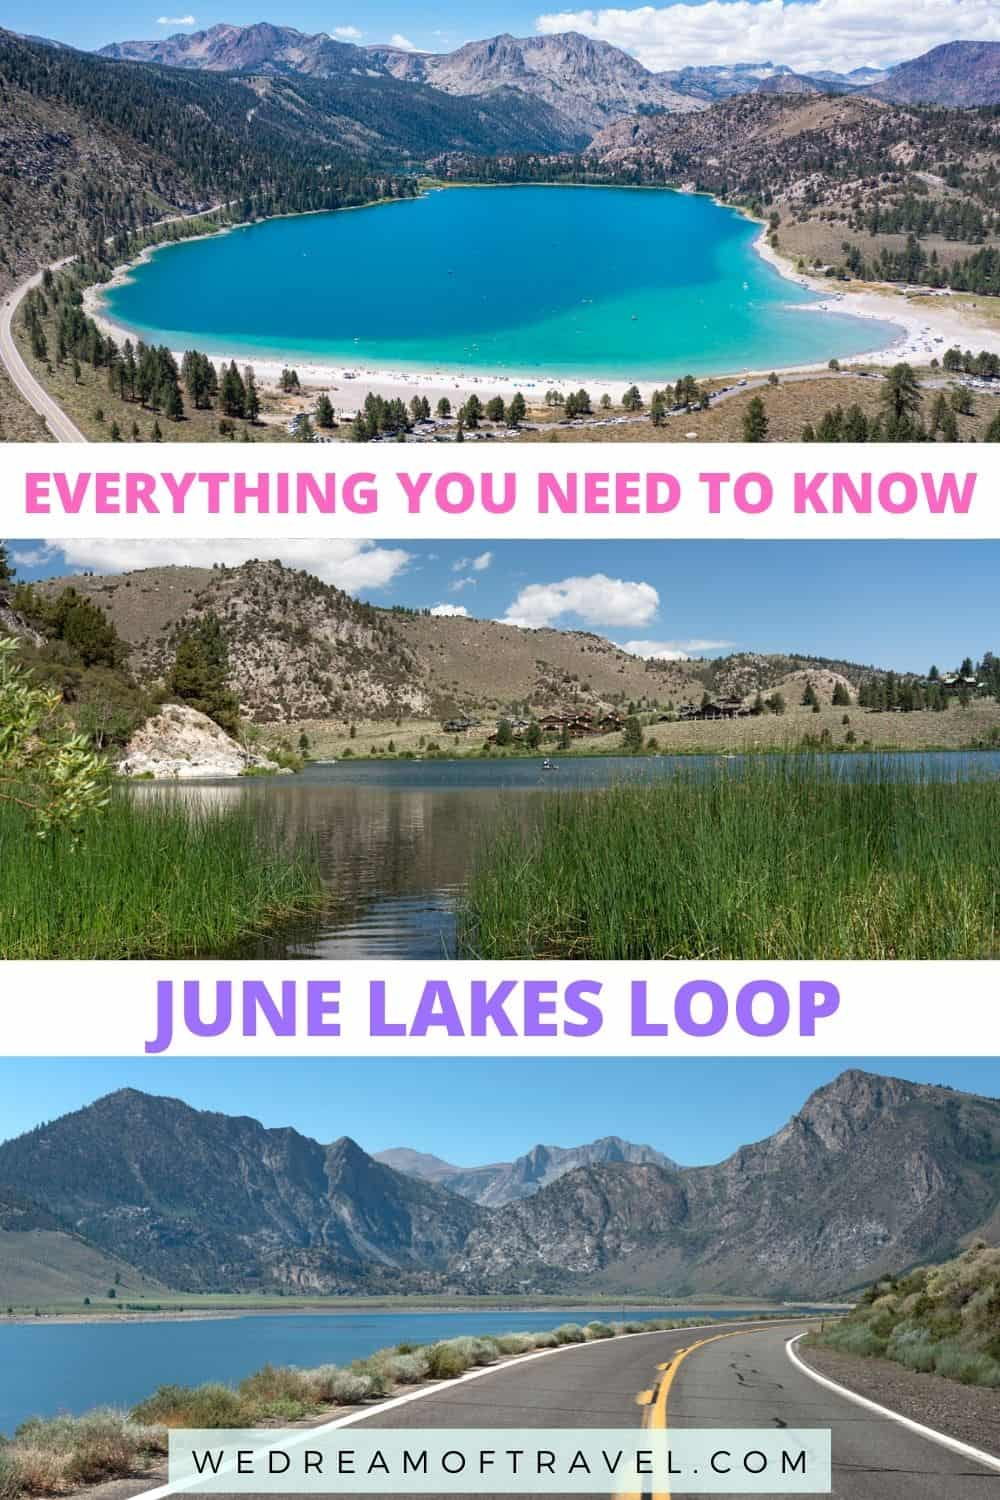 Explore the June Lakes Loop scenic drive and discover fresh mountain air, impossibly blue lakes, mountain hikes, sandy beaches, skiing and more.